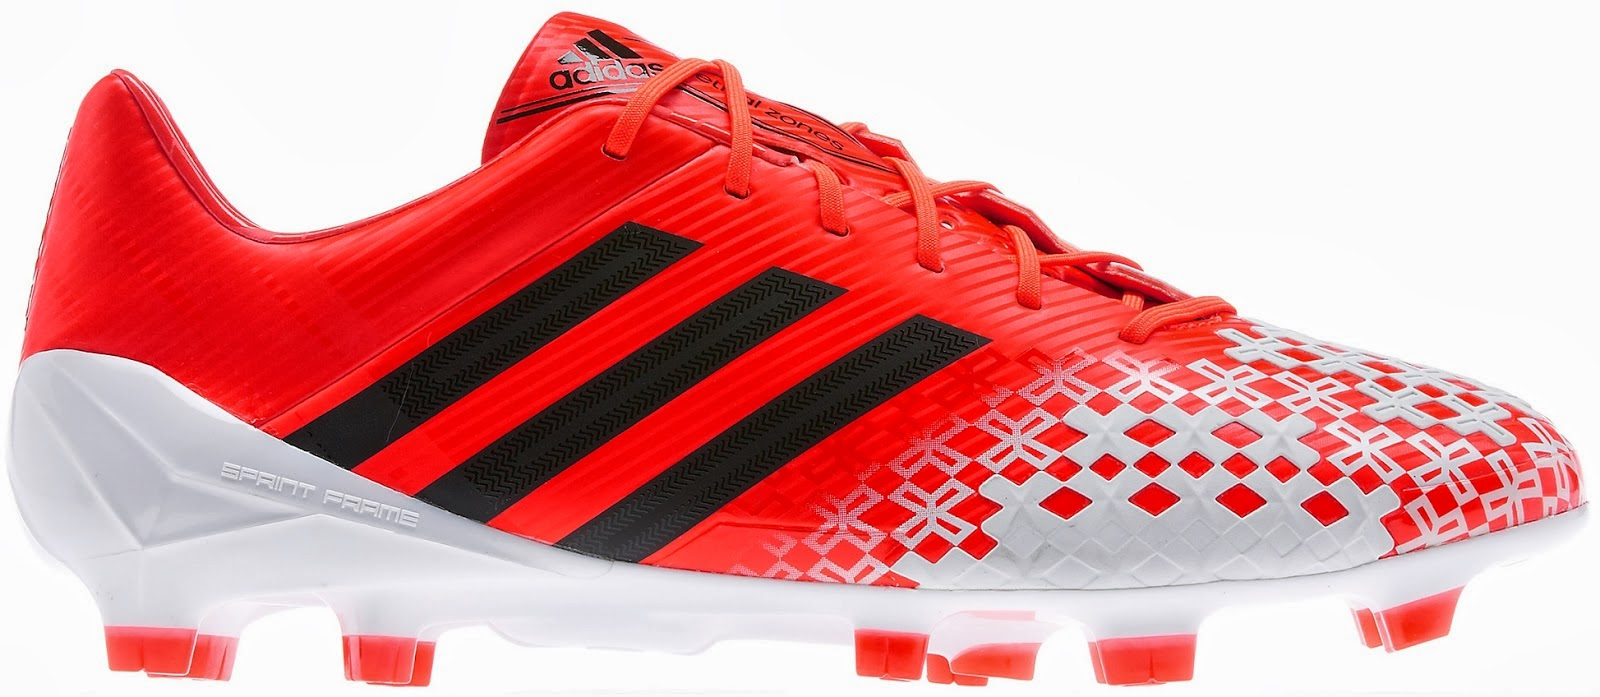 purchase cheap 04edb 279d5 Adidas Predator LZ | RONALD-TAMBUNAN